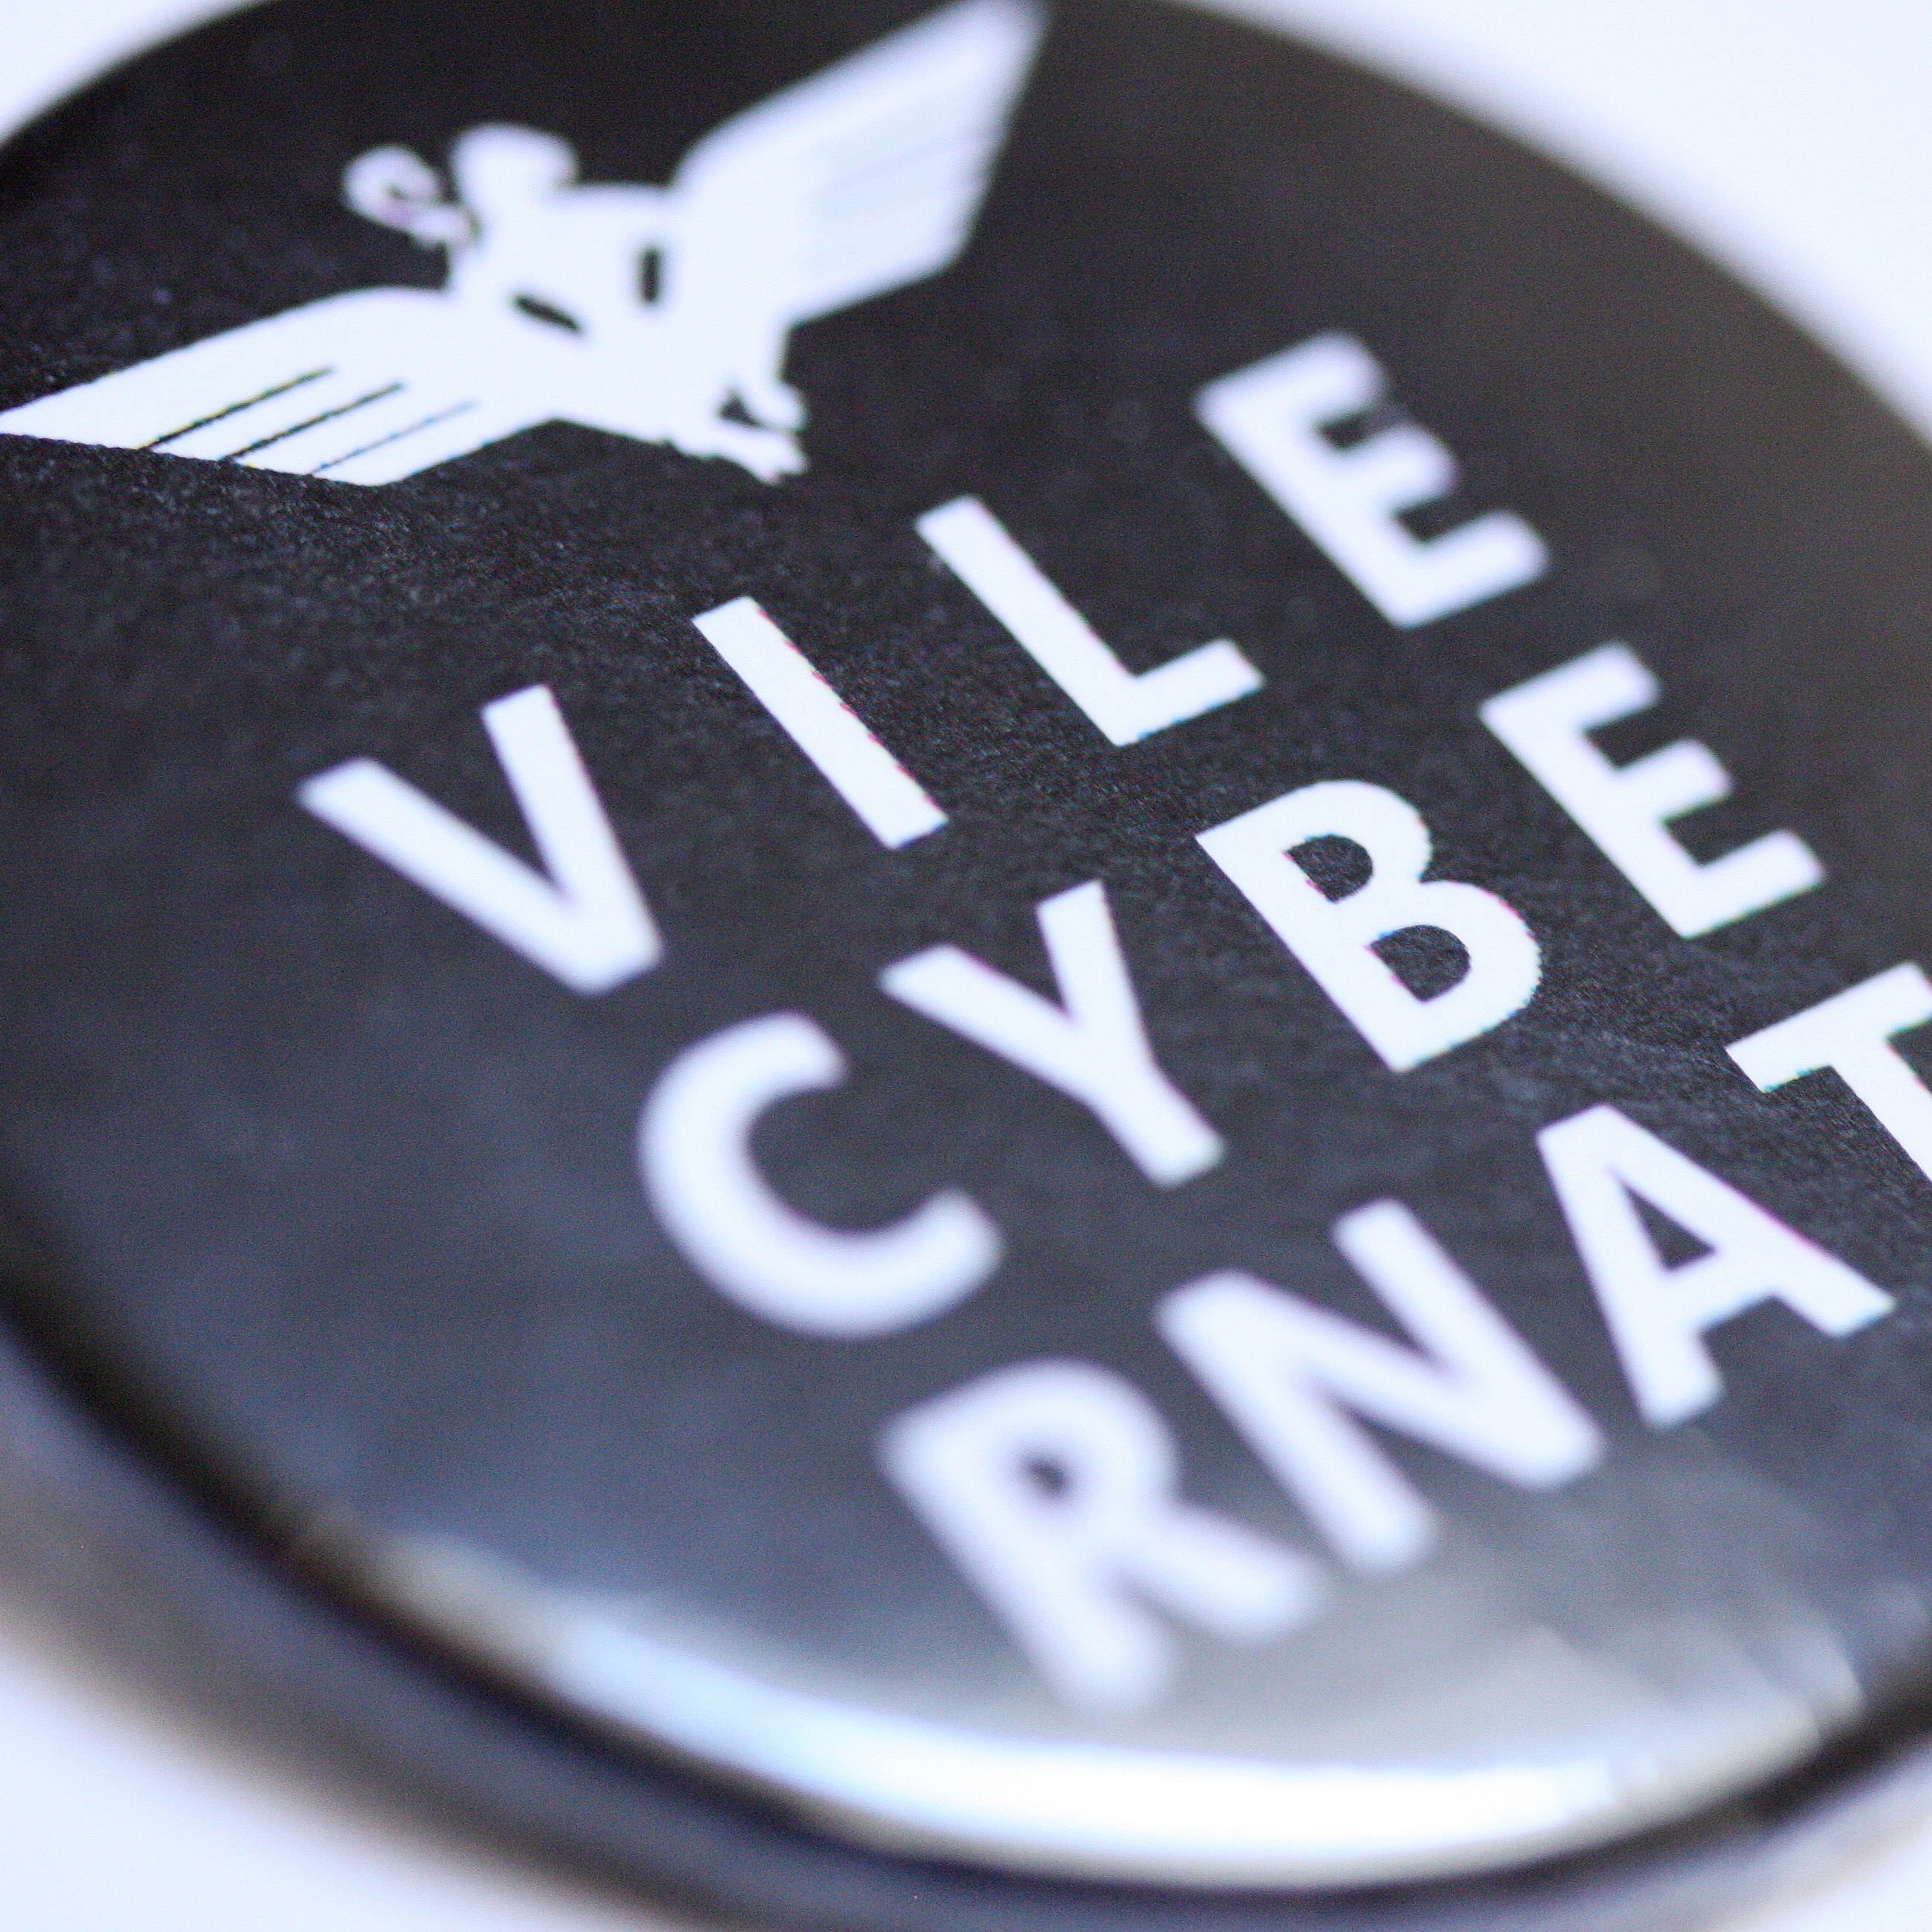 Vile Cybernat 38mm badge